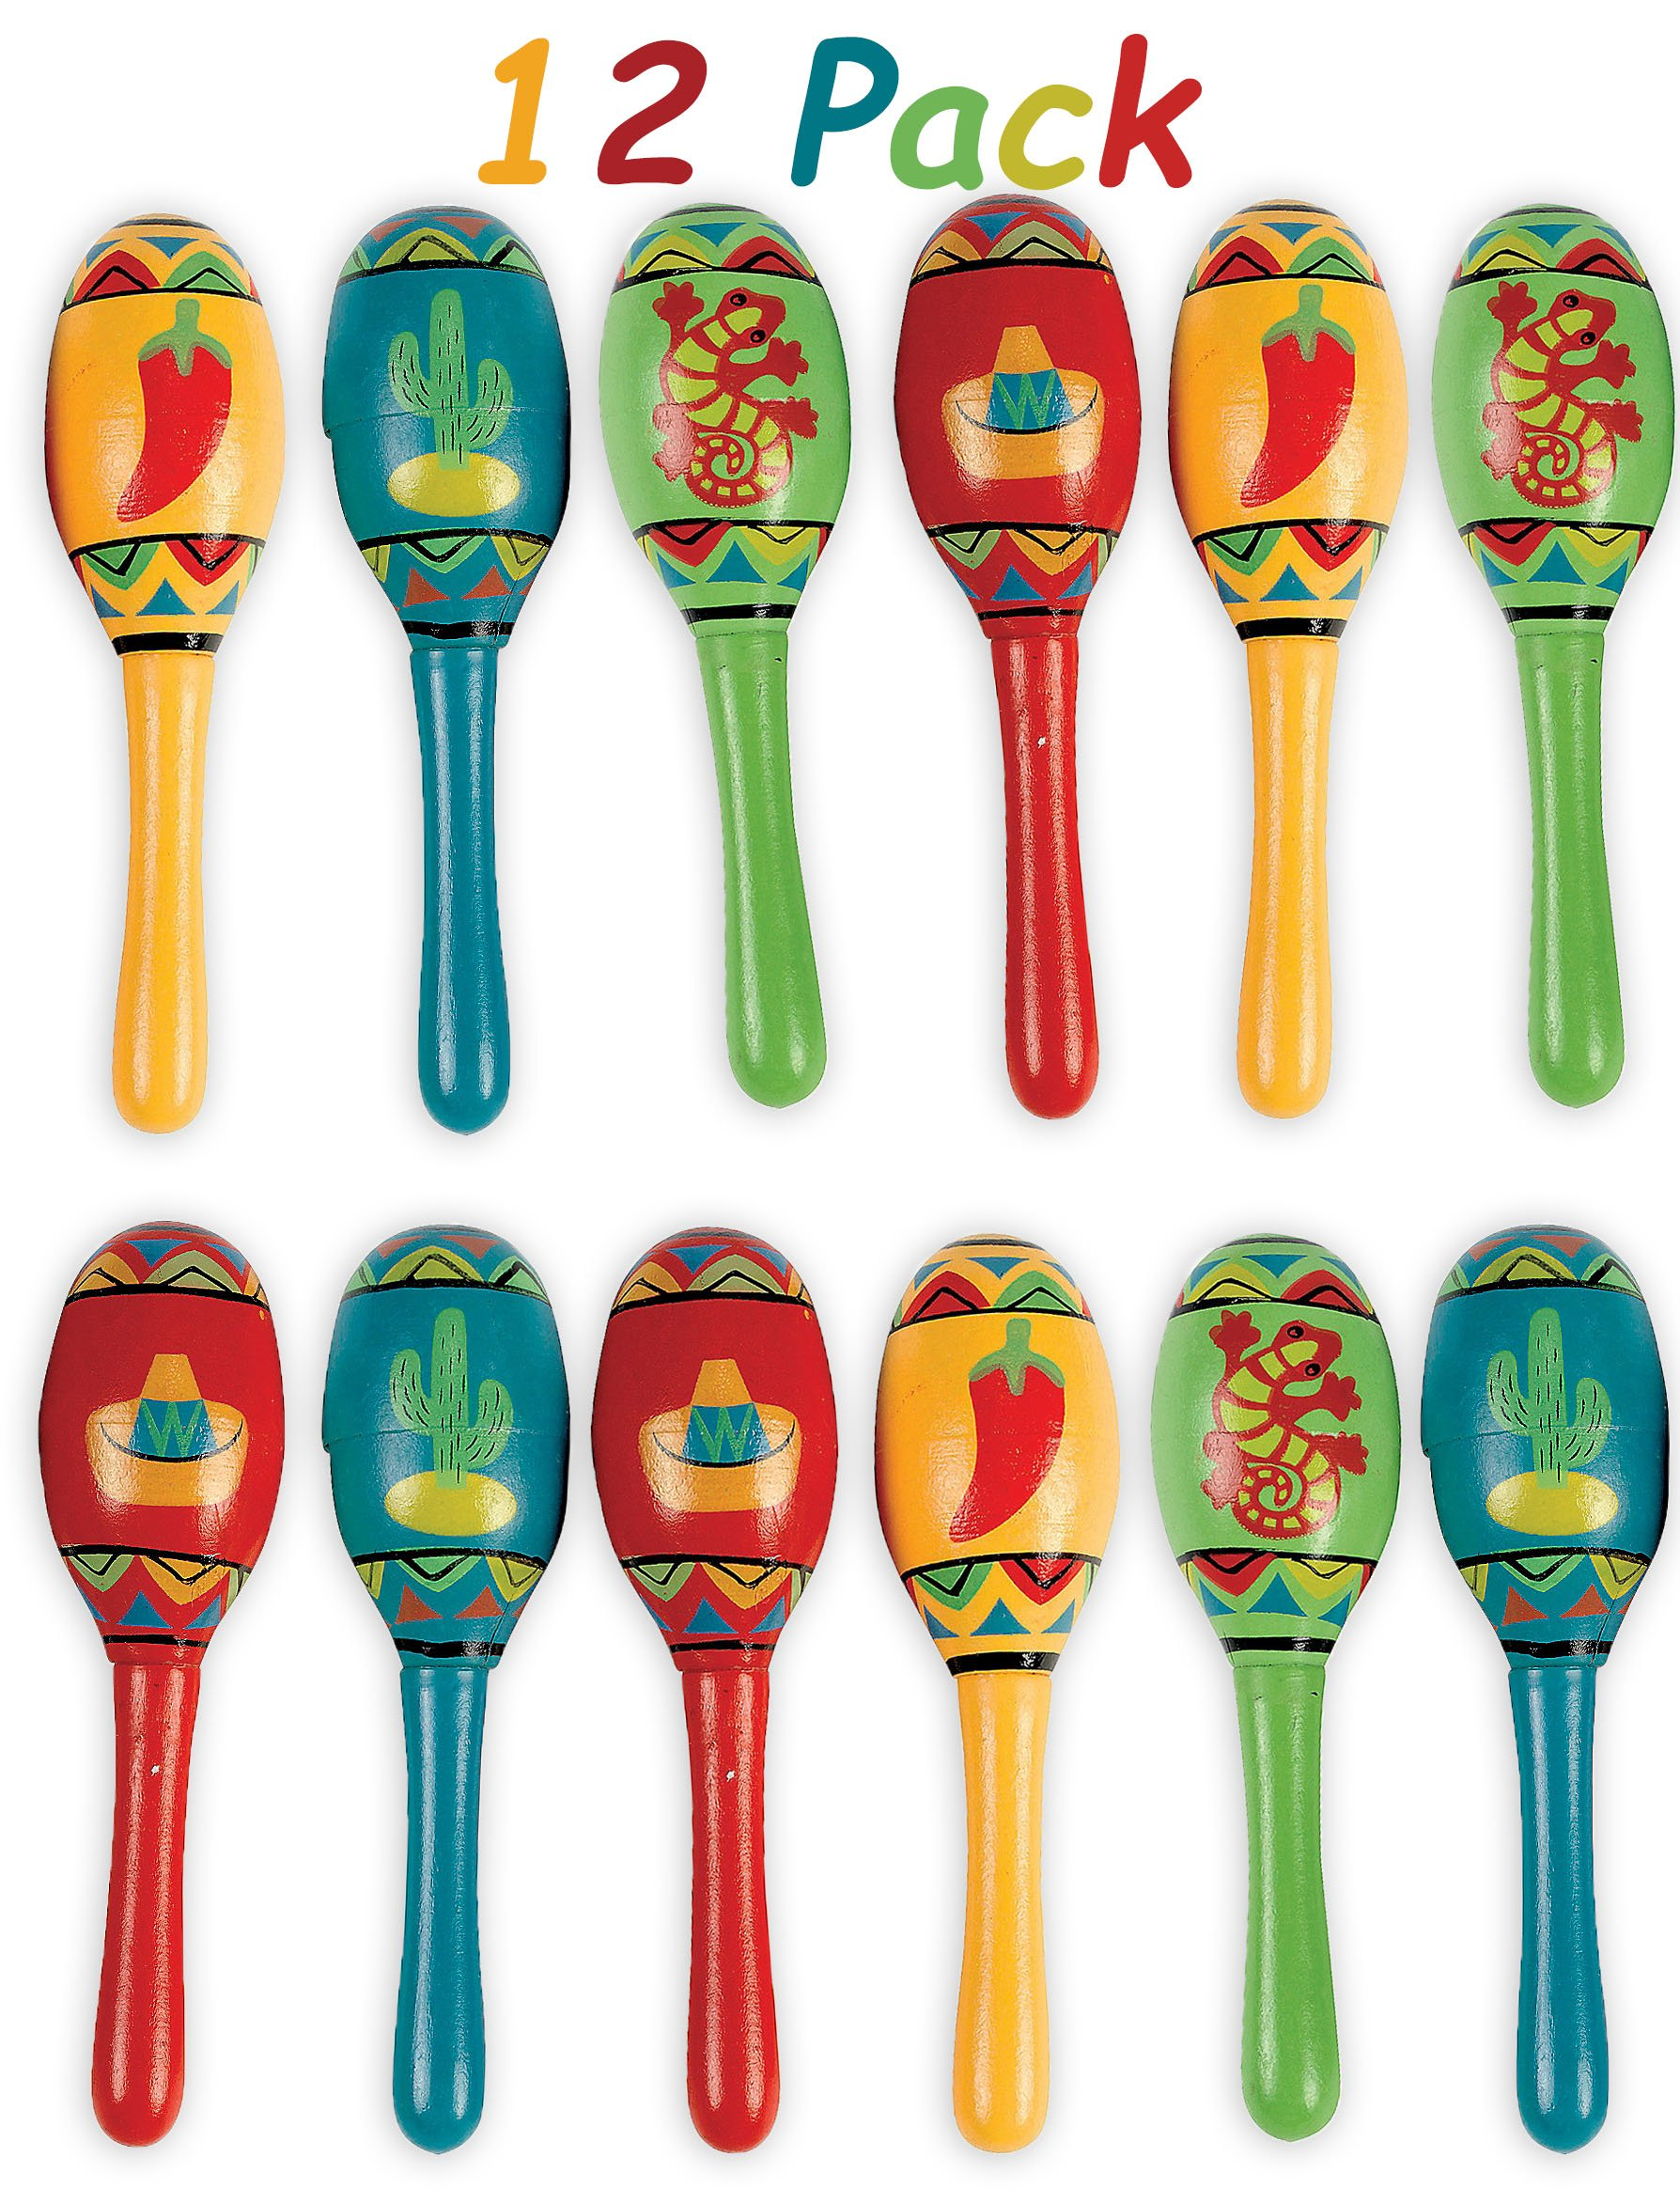 Mini Wooden Maracas Mexican Fiesta Cinco de Mayo Party Favor, Great for Decorations, Noisemaker Toys, 4 Different Styles, Bright Colors, Pack of 12, 5'' For Kids, Boys, Girls, By 4E's Novelty